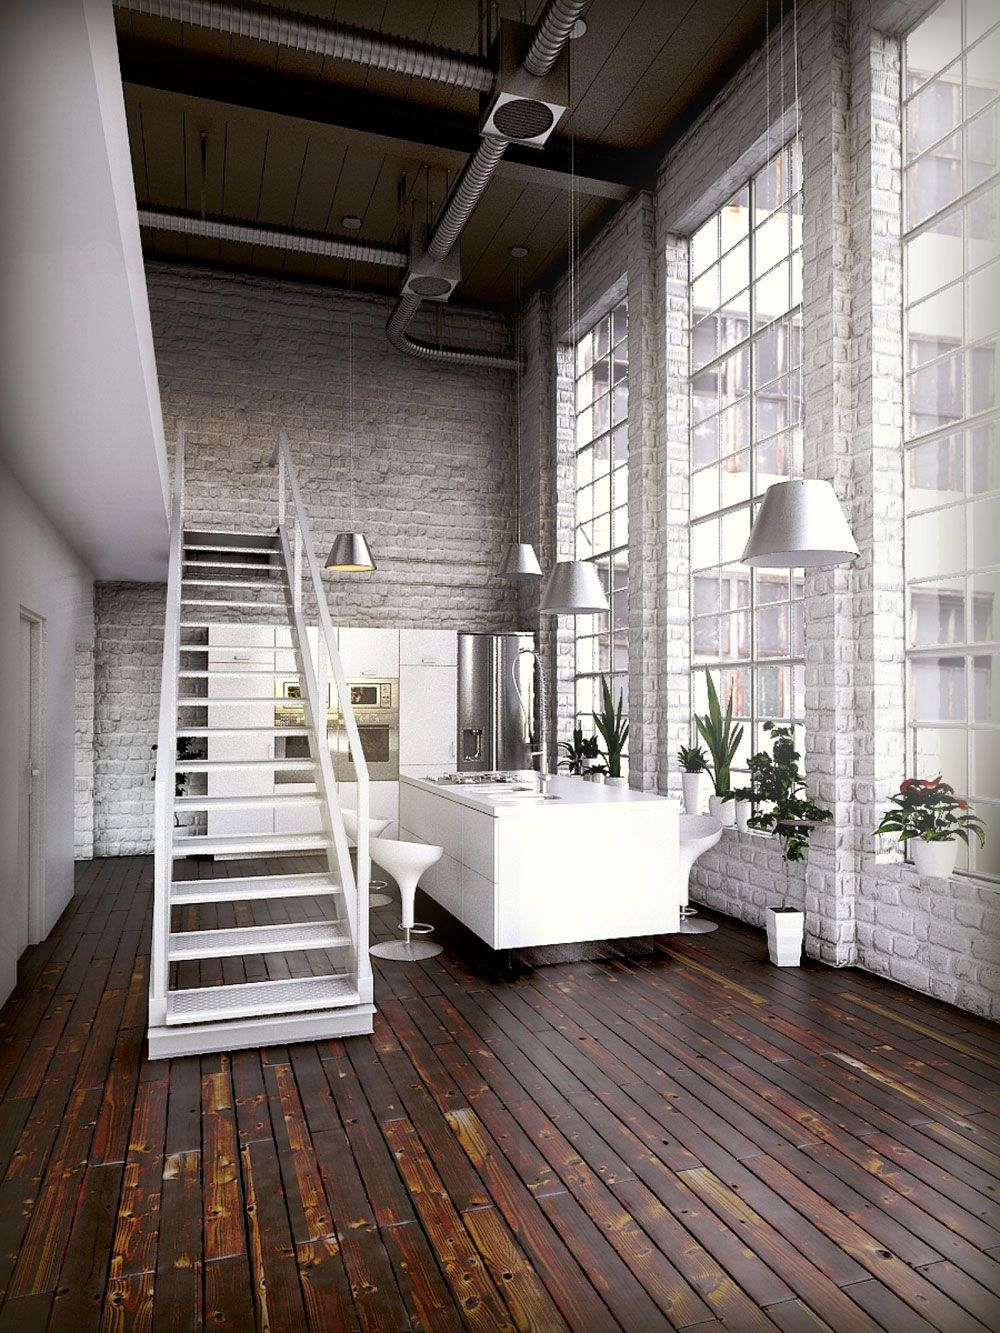 Captivating White, Home, Interior, Industrial, Inspiration, Bedroom, Living Room, Oracle